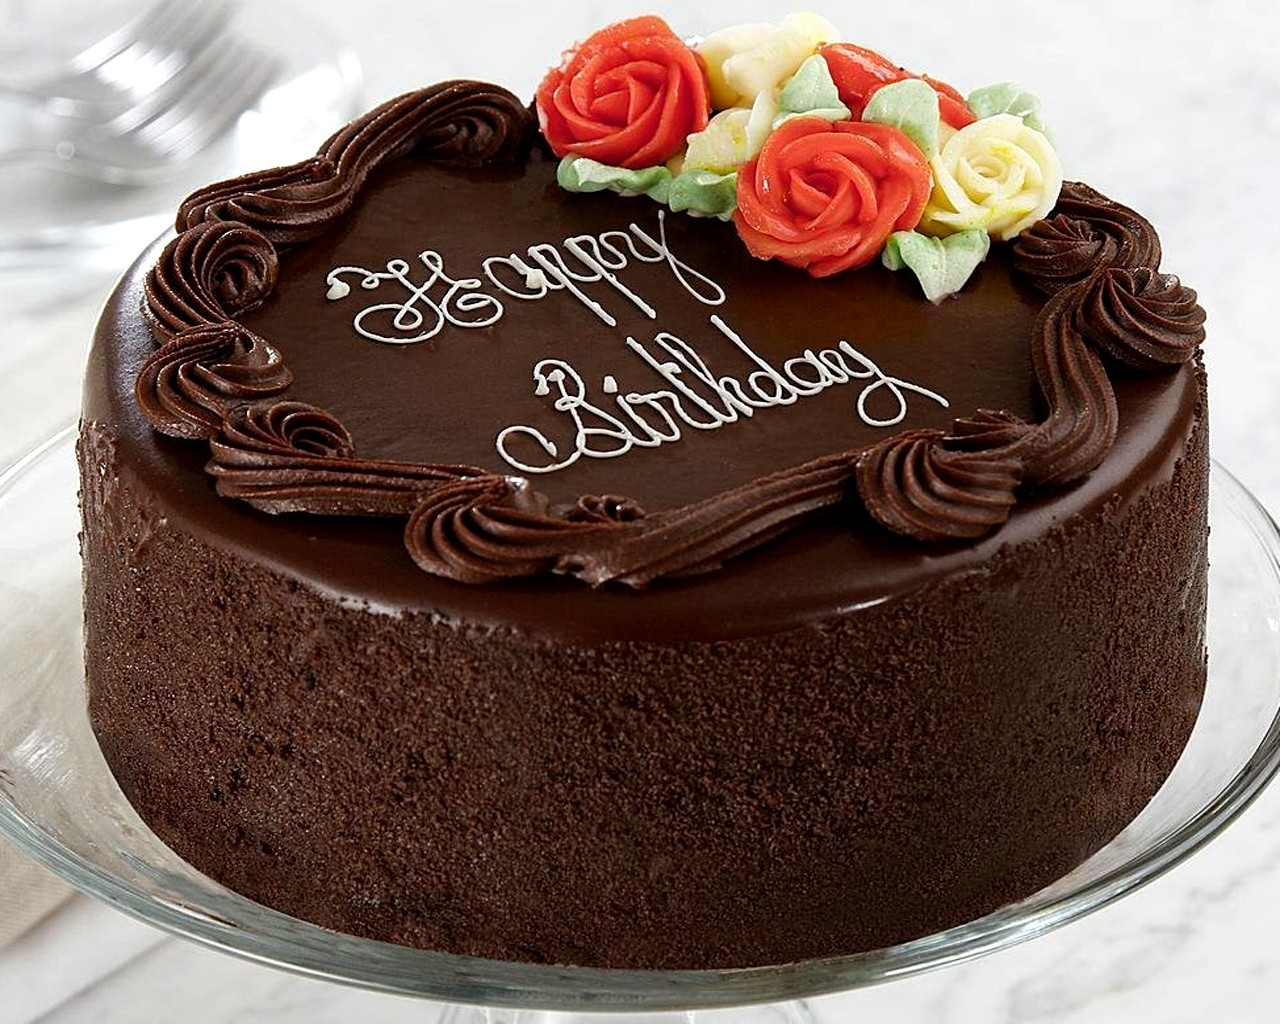 Superb Birthday Cake Pictures Download Posted By Zoey Mercado Funny Birthday Cards Online Benoljebrpdamsfinfo